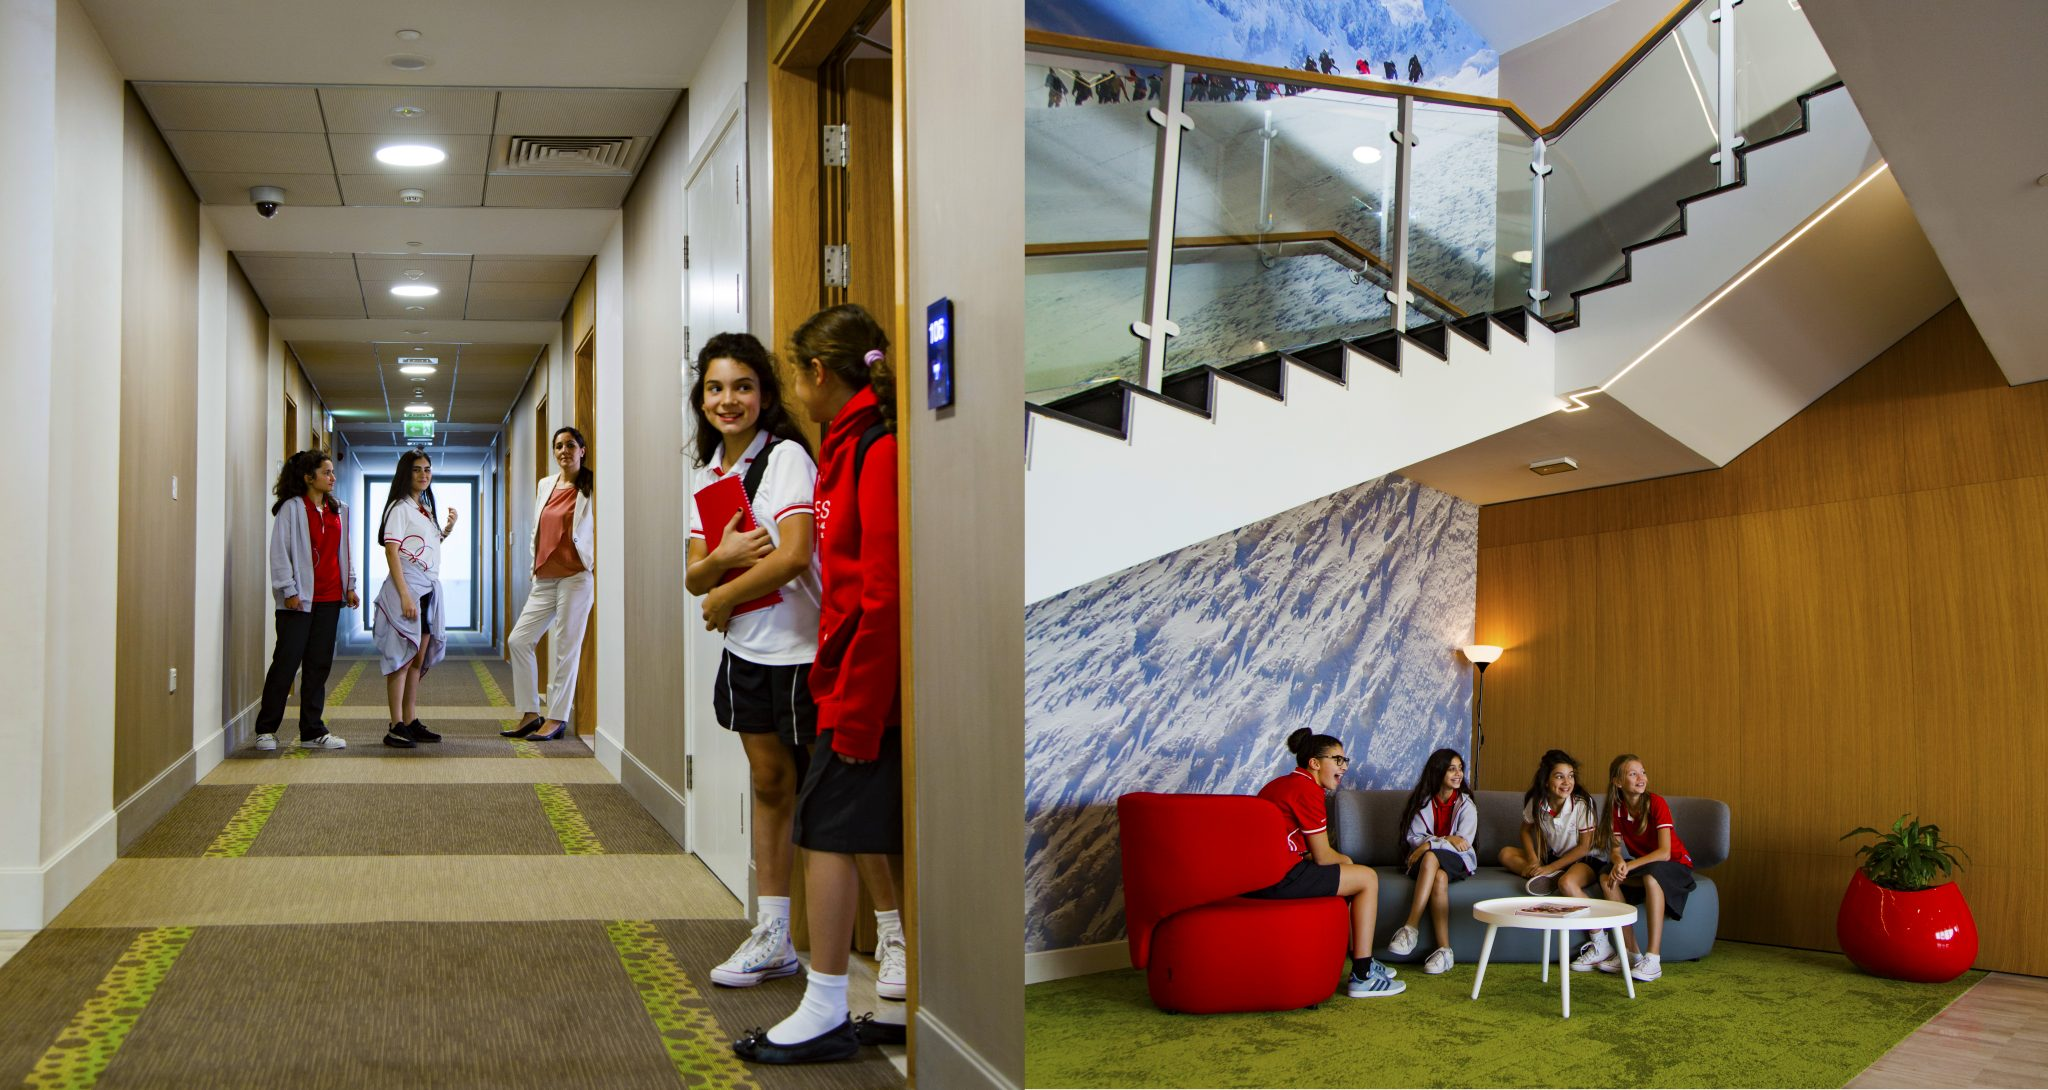 Photographs of the new Girl Boarding Facilities at the Swiss Scientific International School in Dubai opening September 2018